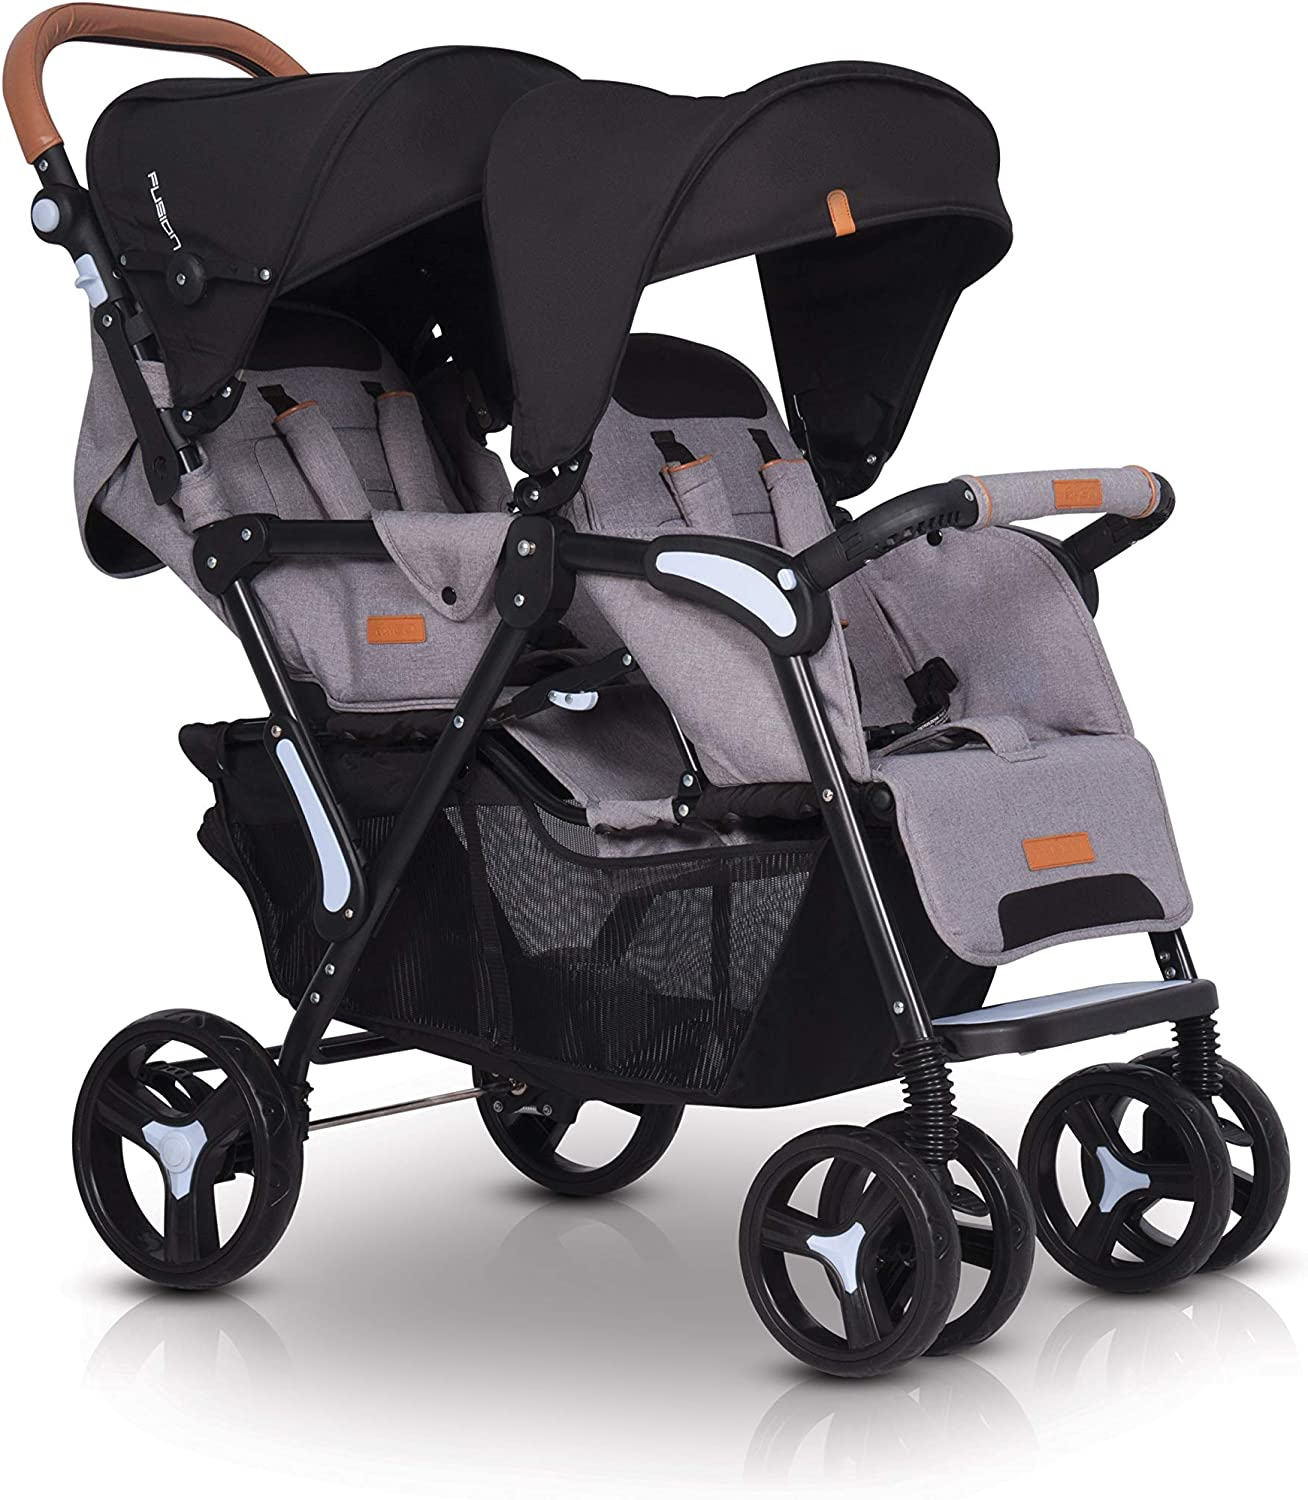 Backrest Adjustment in Double Stroller Twin Stroller has Sunshade Lightweight Double Pushchairs Swivel Wheels /& Roomy Shopping Basket Double Buggy with Footmuff Raincover